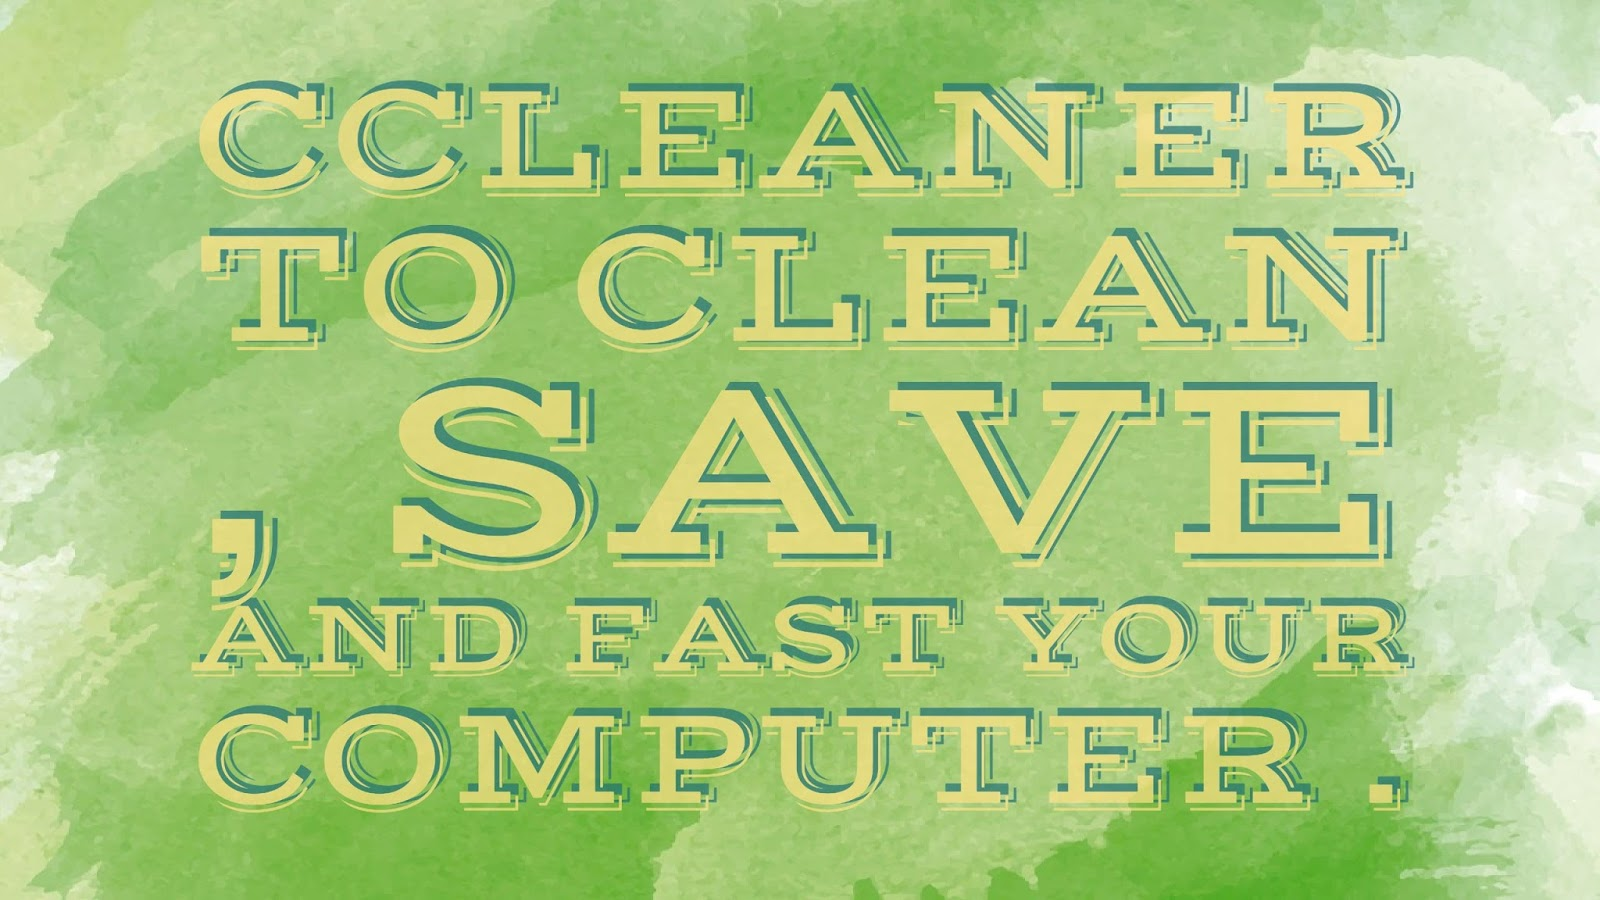 CCleaner to clean , save and fast your computer .